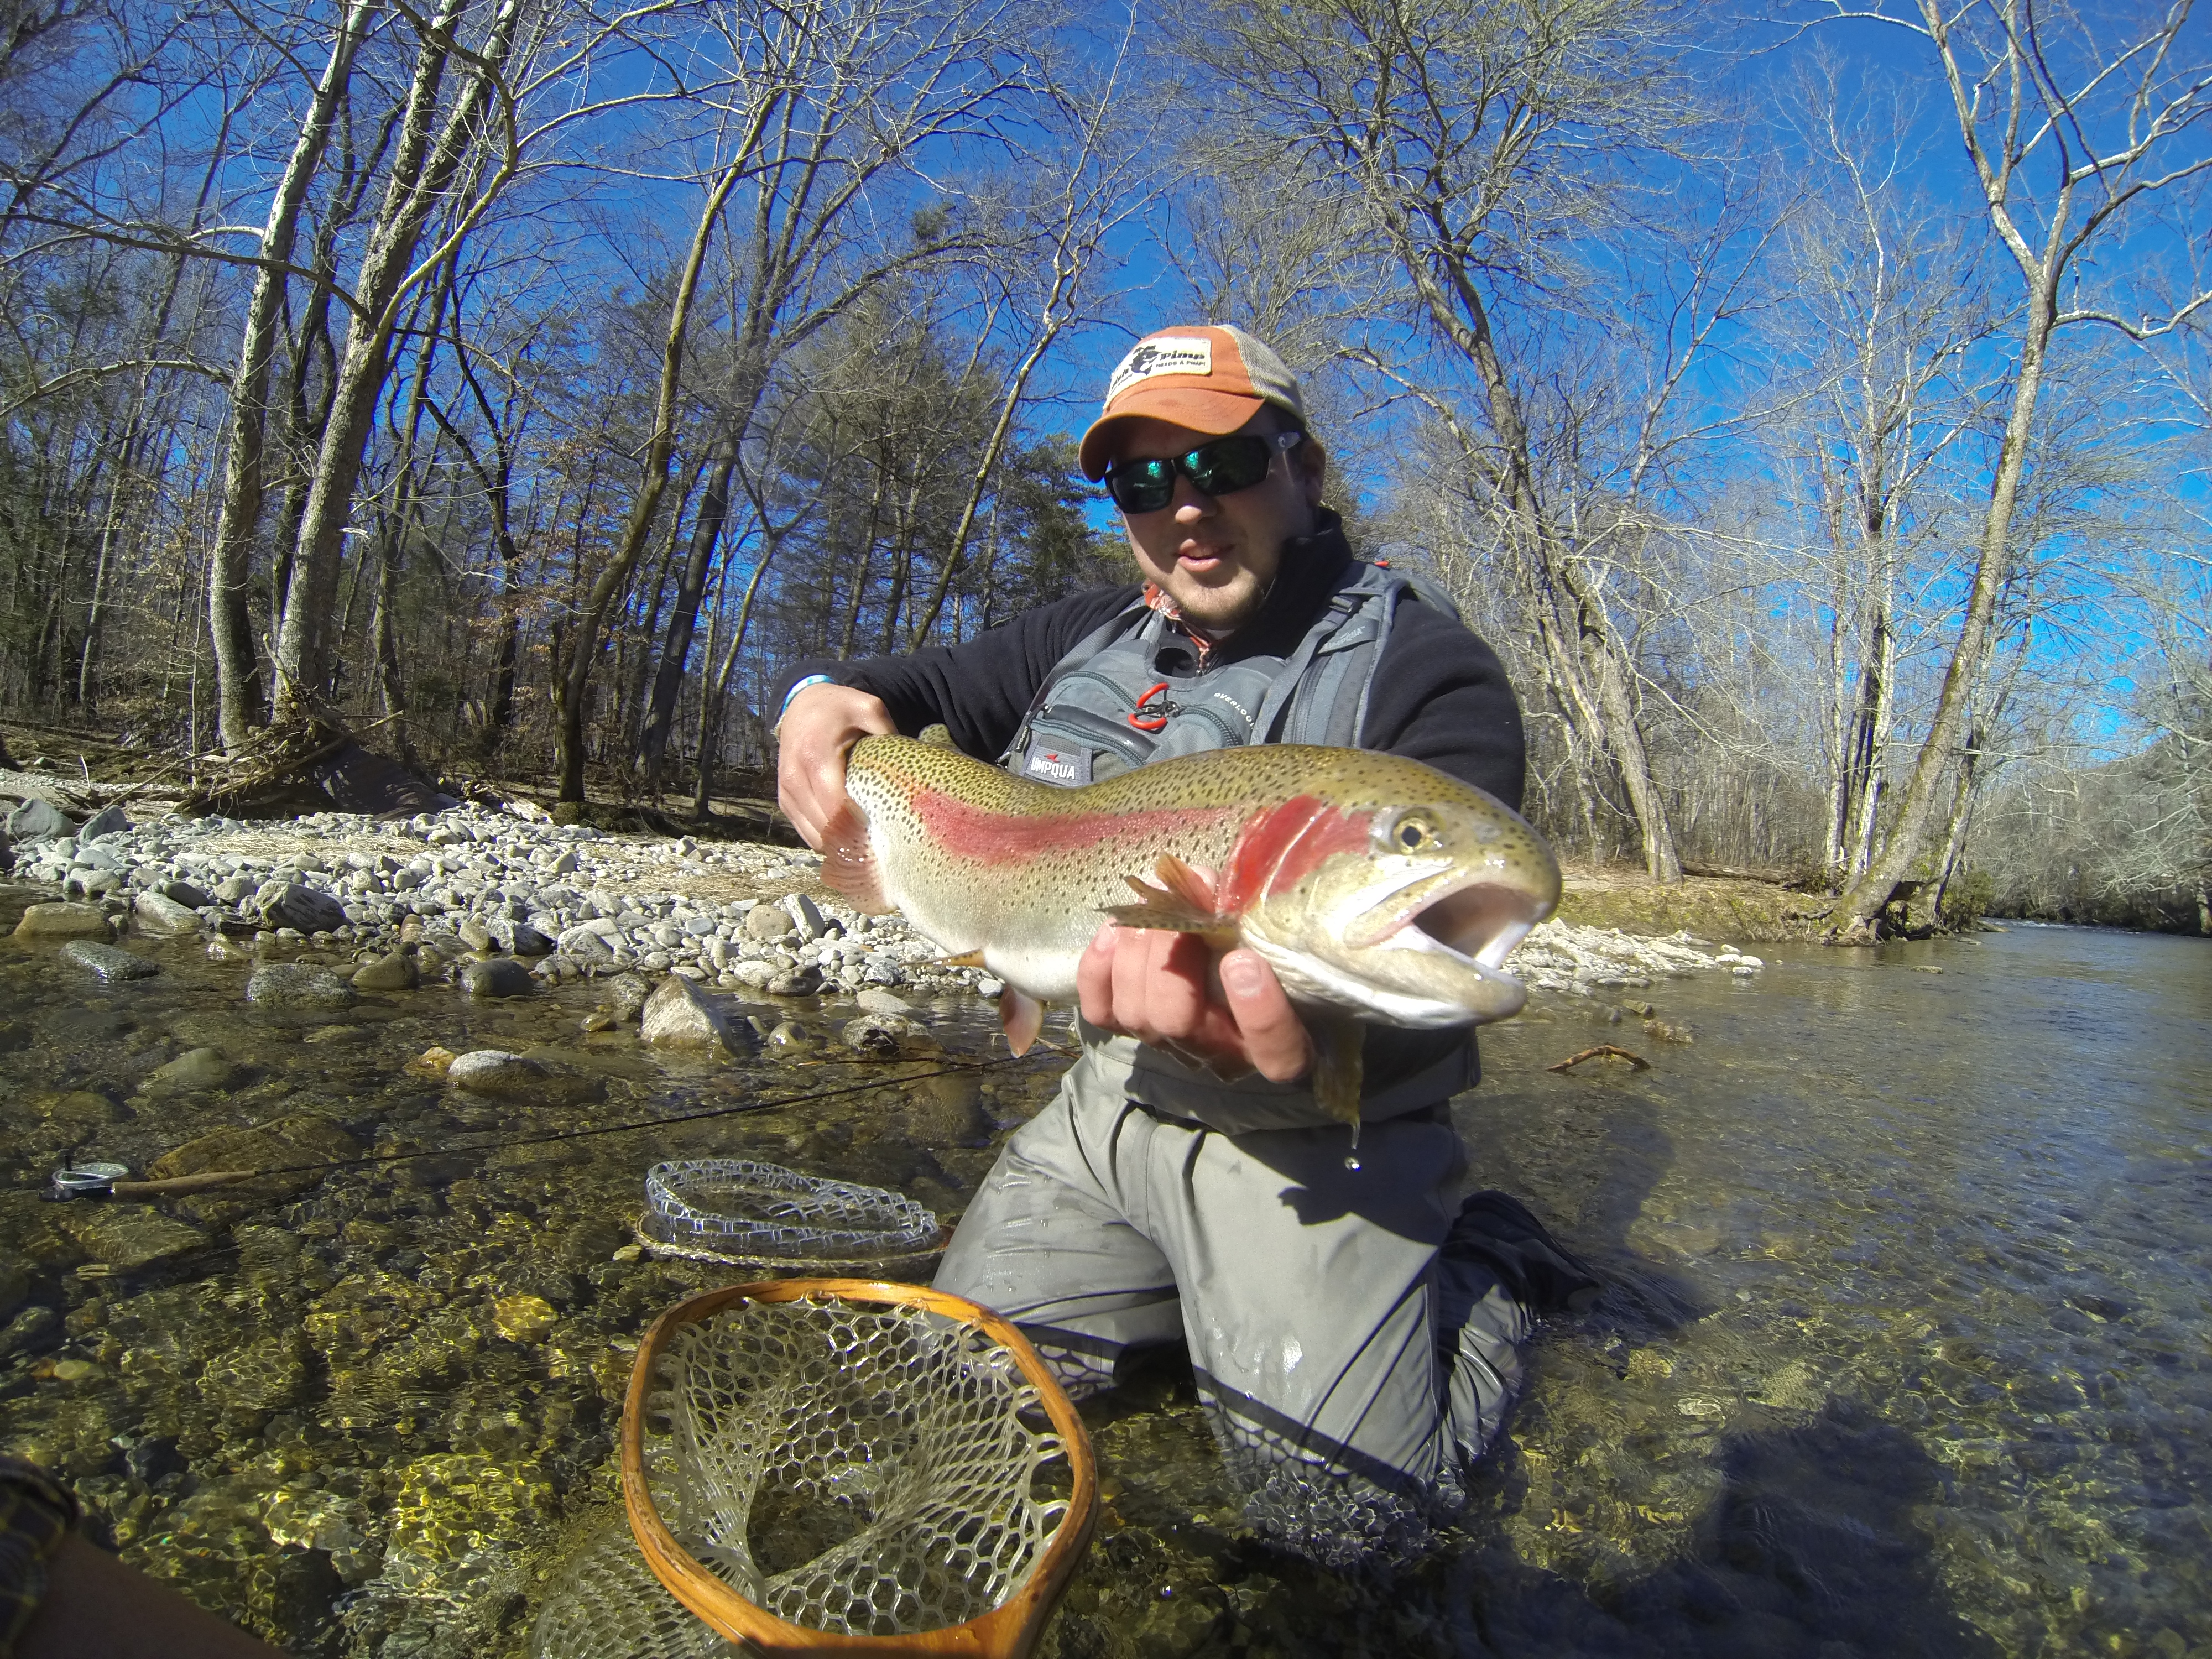 Fly fish cherokee nc hookers fly shop and guide service for Cherokee trout fishing